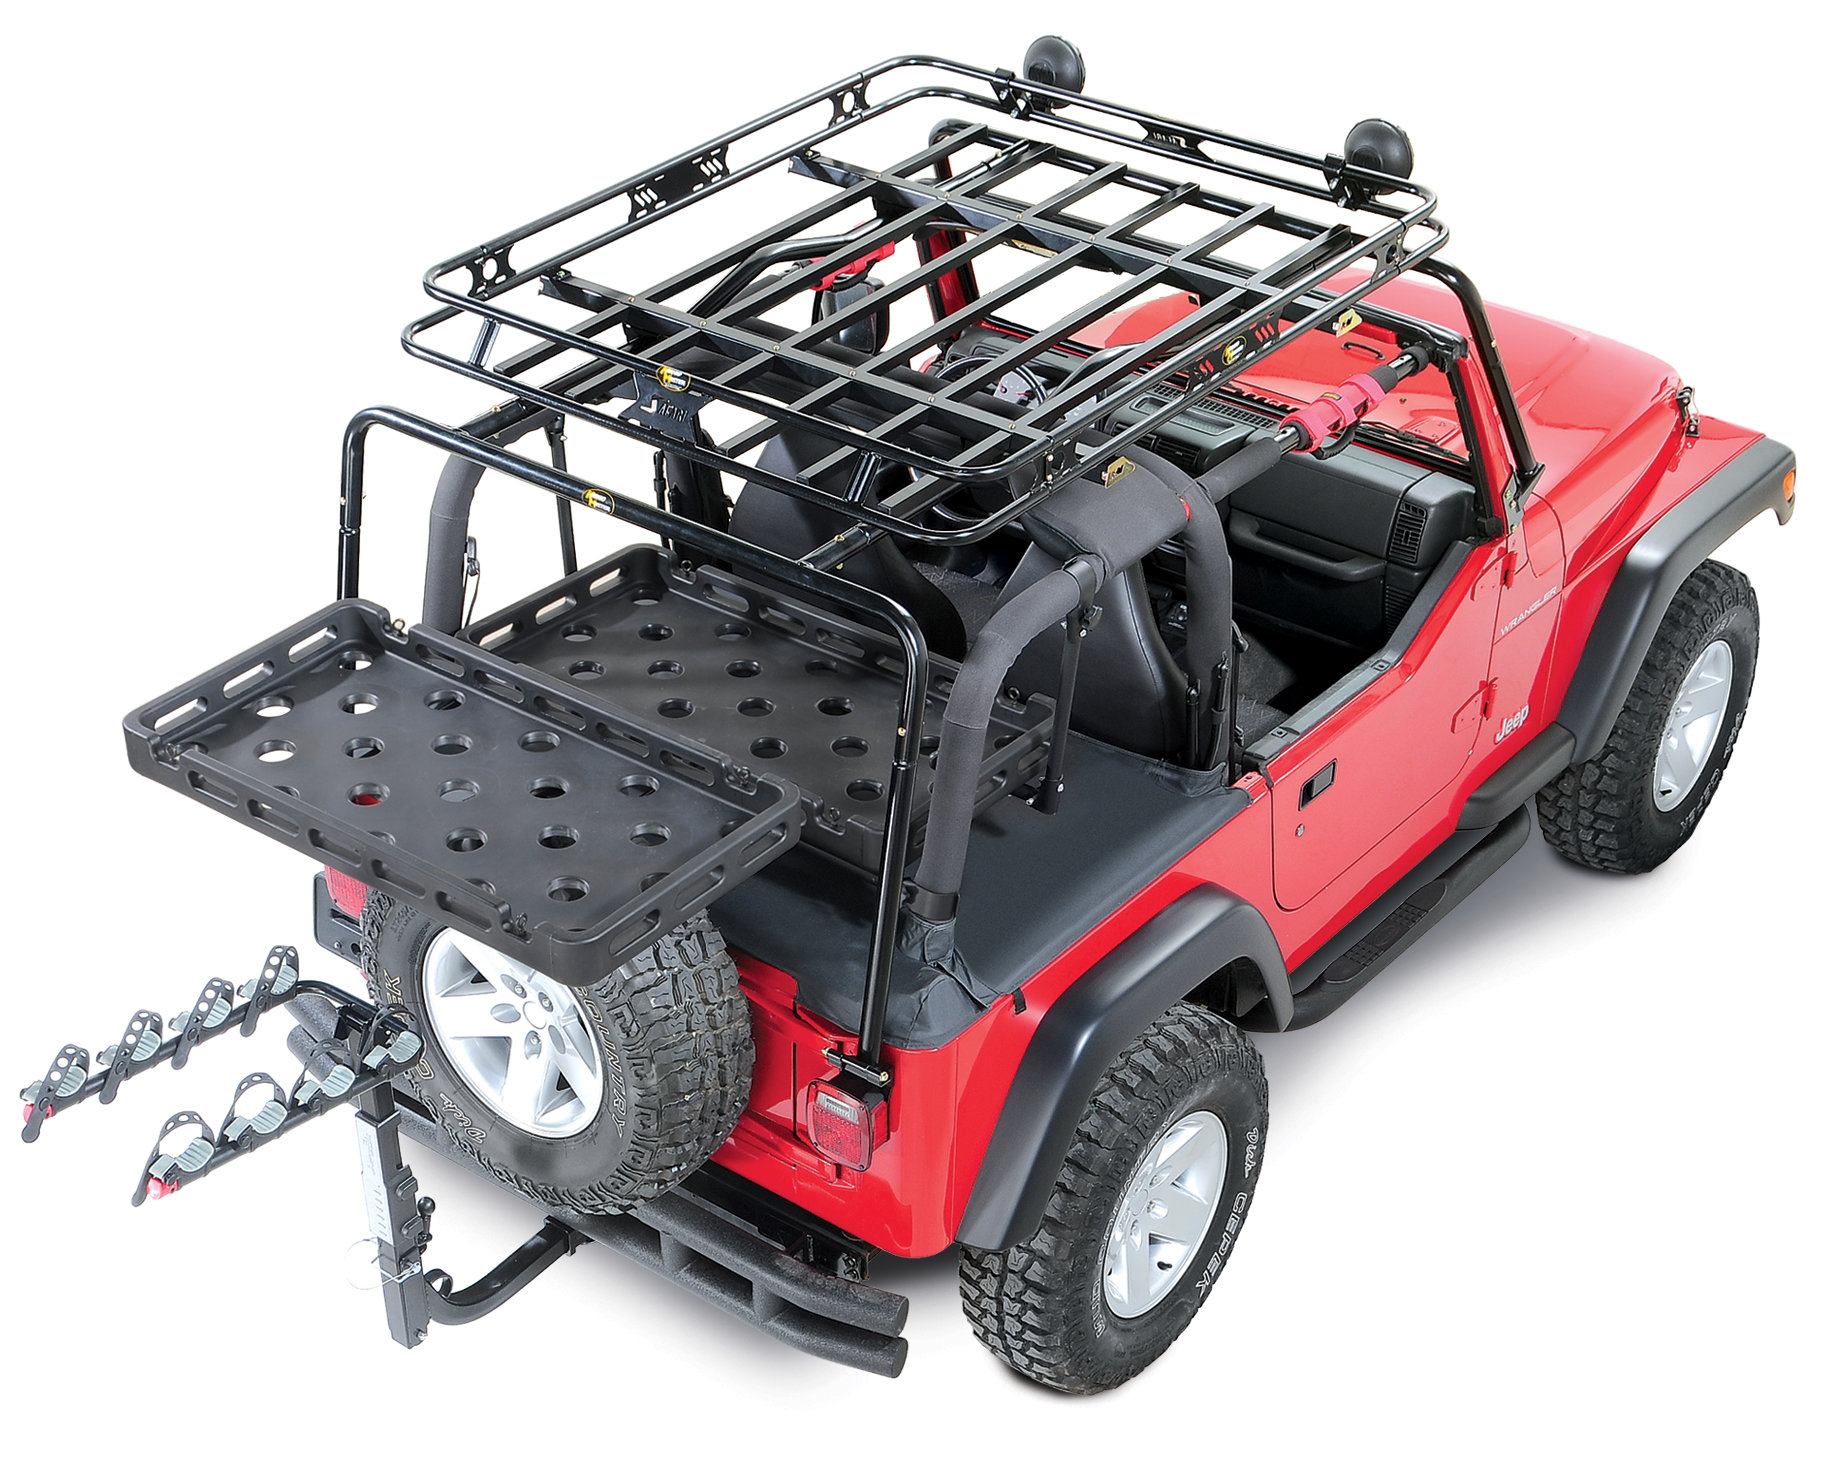 hight resolution of bestop highrock 4x4 lower cargo rack bracket with universal rack tray for 92 02 jeep wrangler yj tj